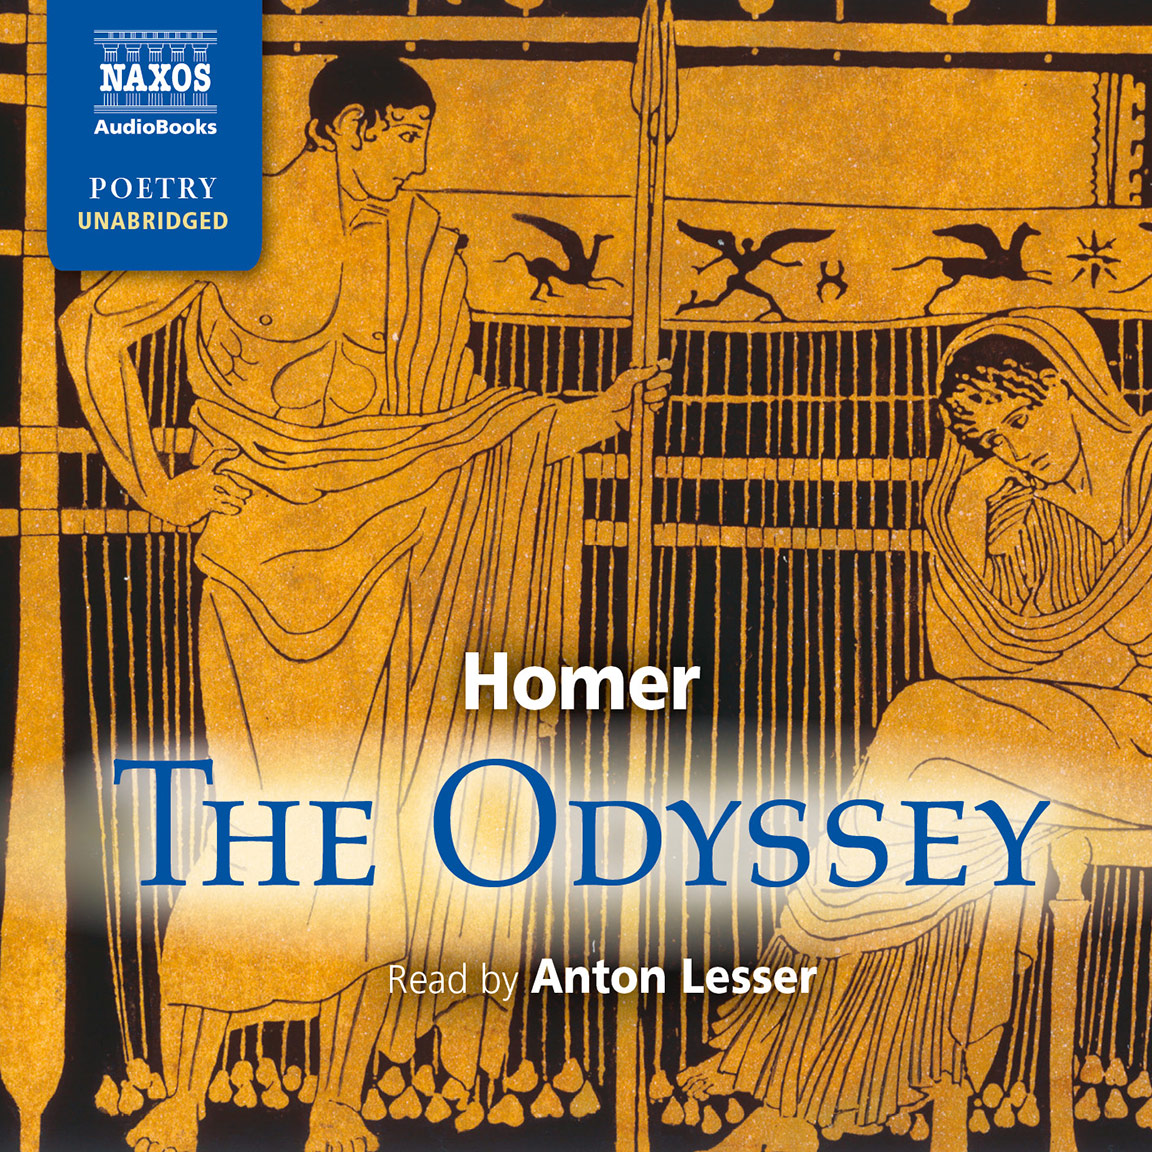 the odyssey years The period in a person's twenties, before careers and relationships have settled.